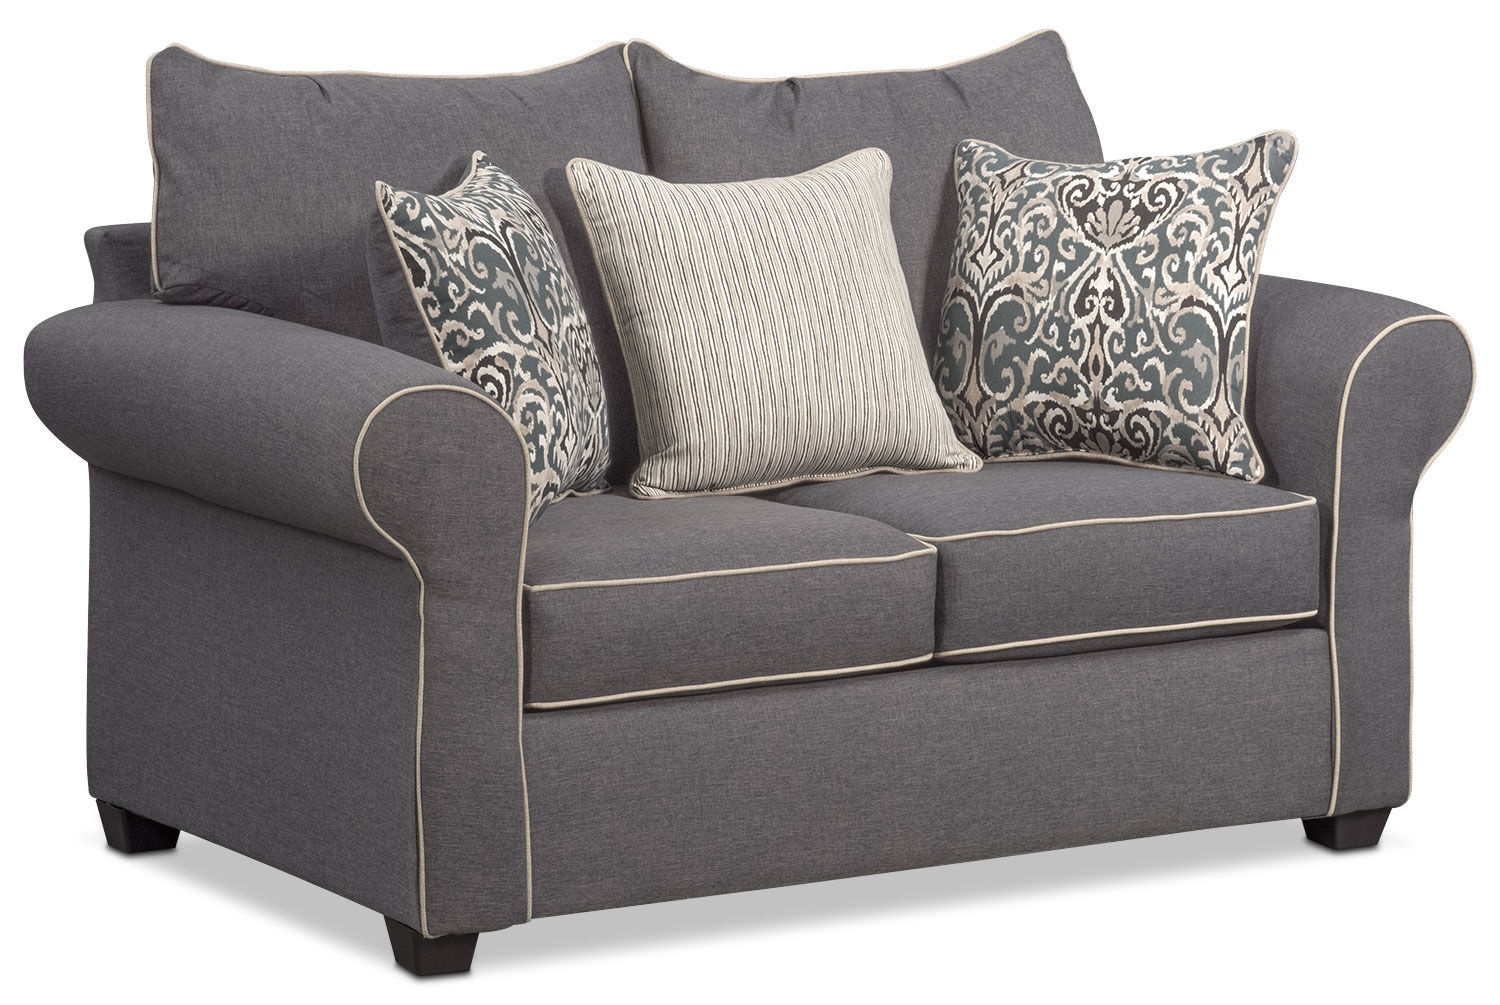 lovely lounge sofa bed online-Beautiful Lounge sofa Bed Online